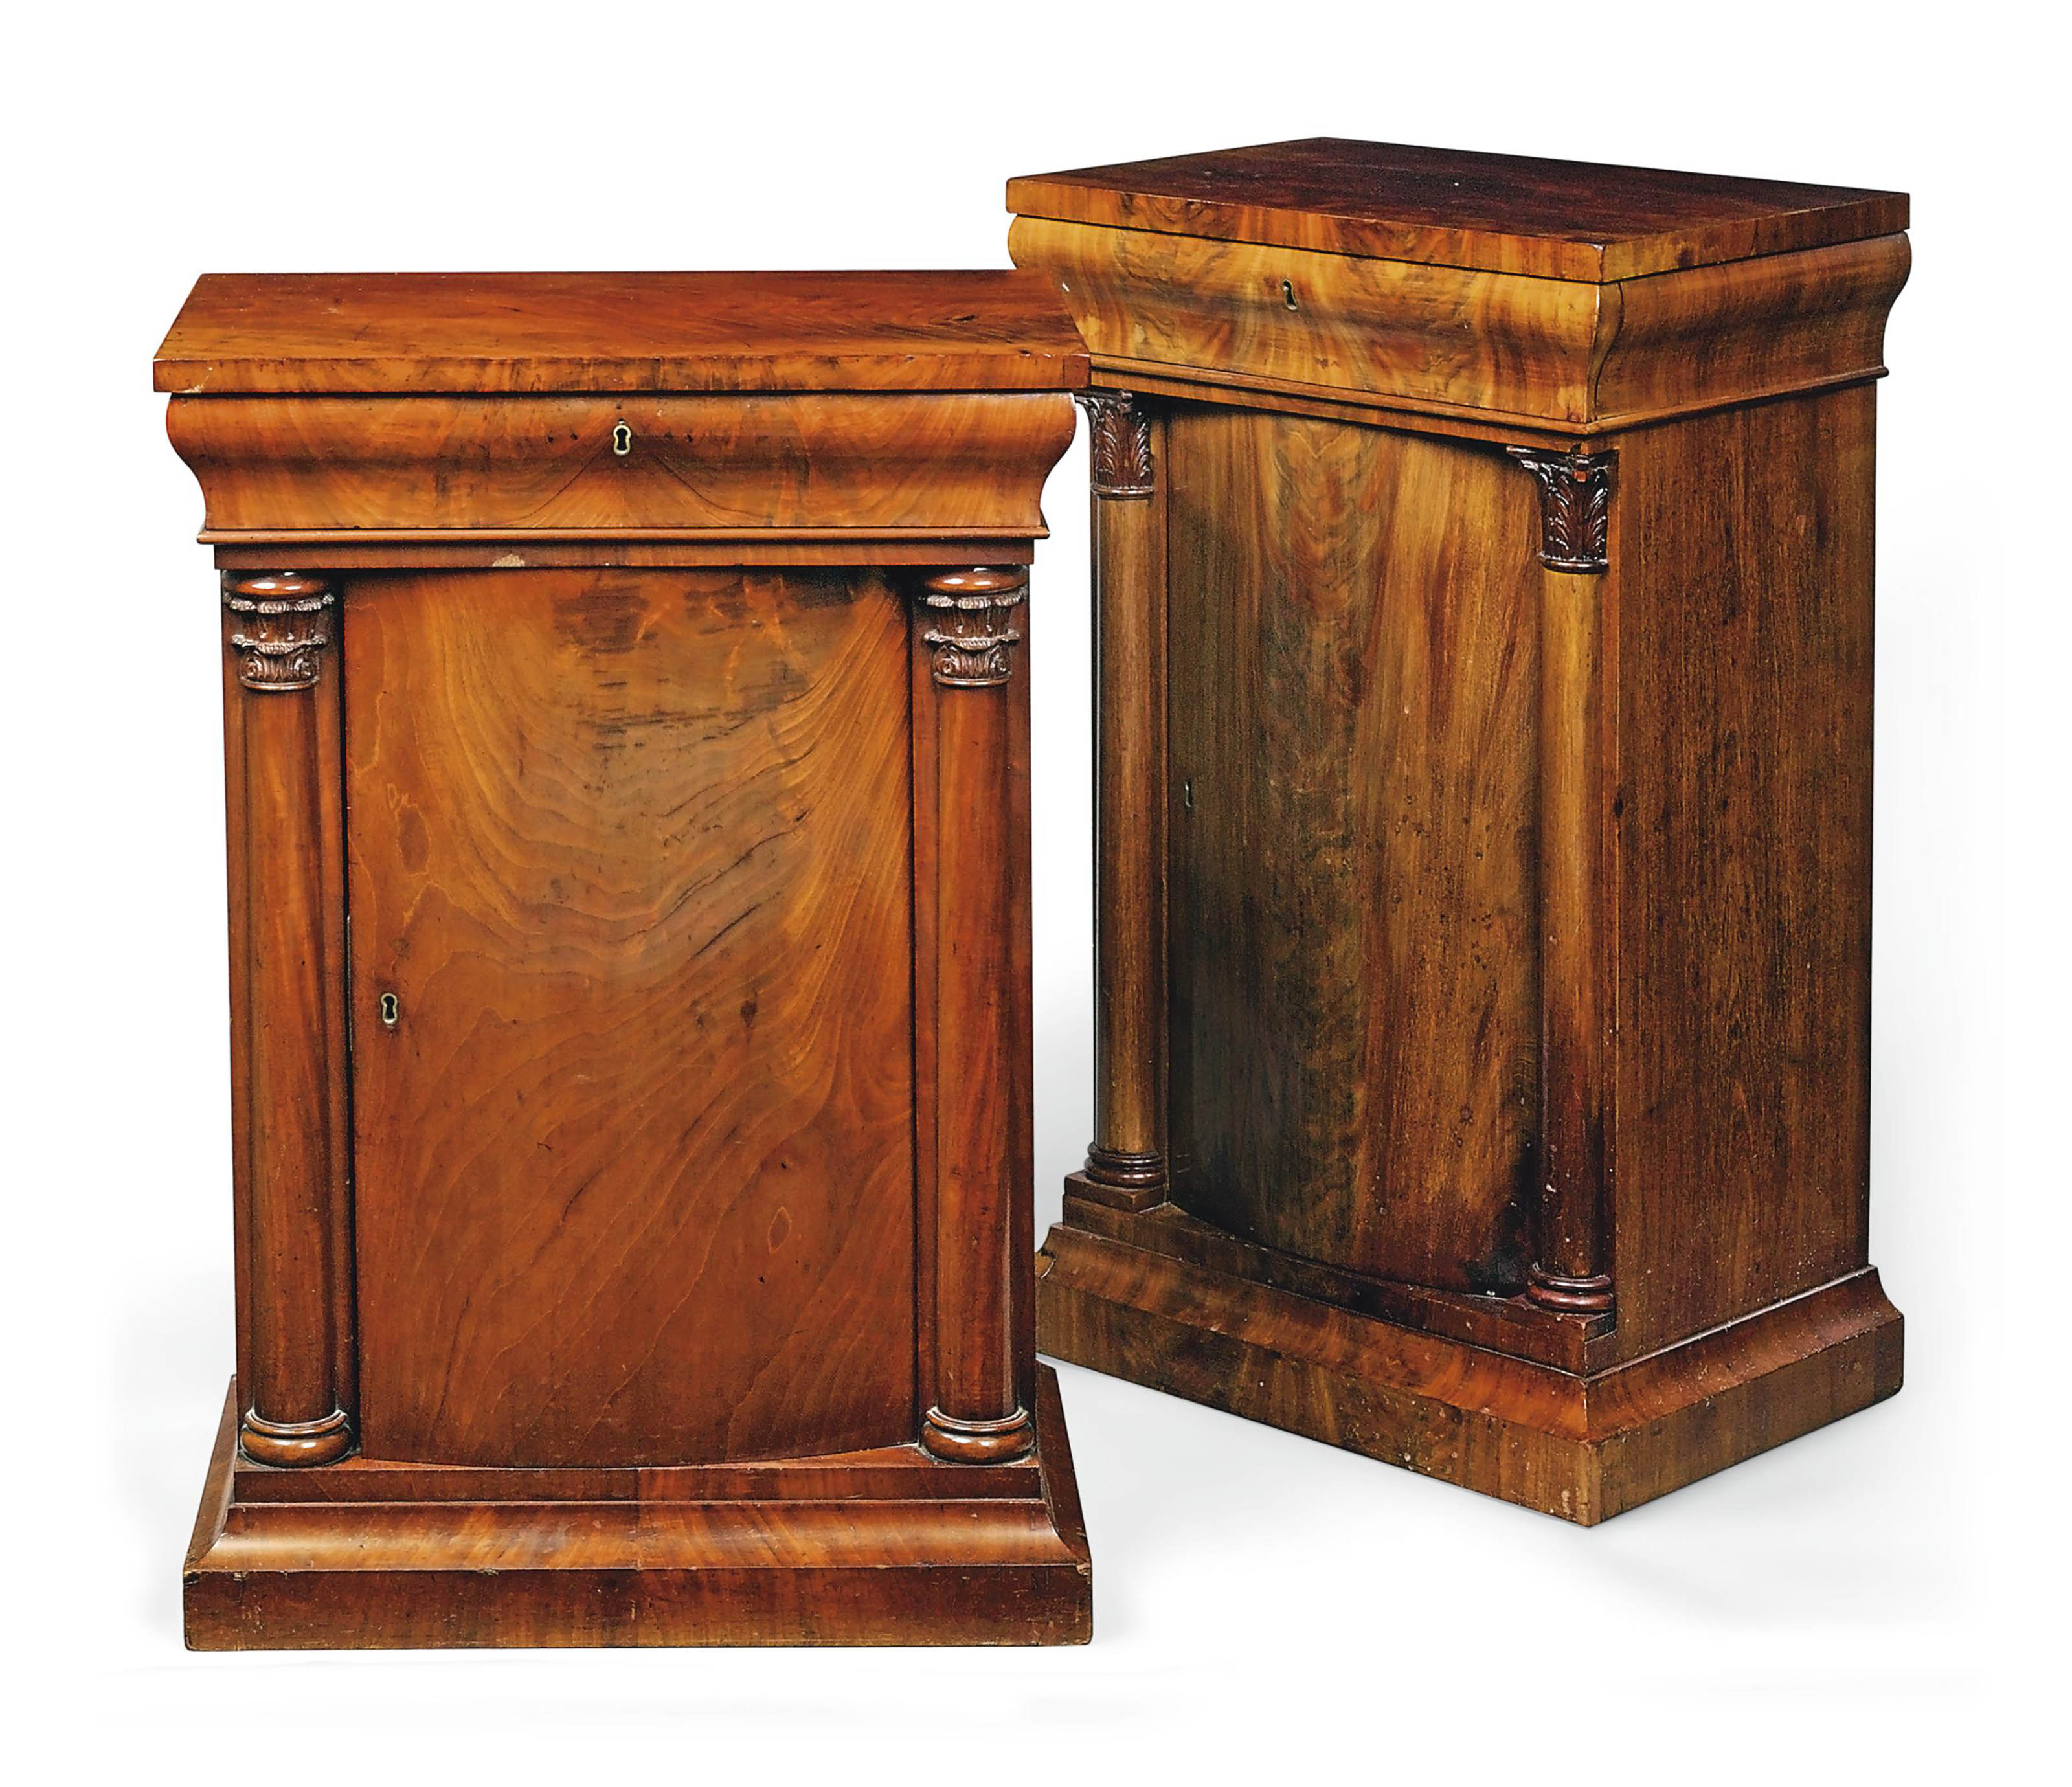 A NEAR PAIR OF ROYAL GERMAN MAHOGANY BEDSIDE PIER CABINETS , LATE 19TH CENTURY